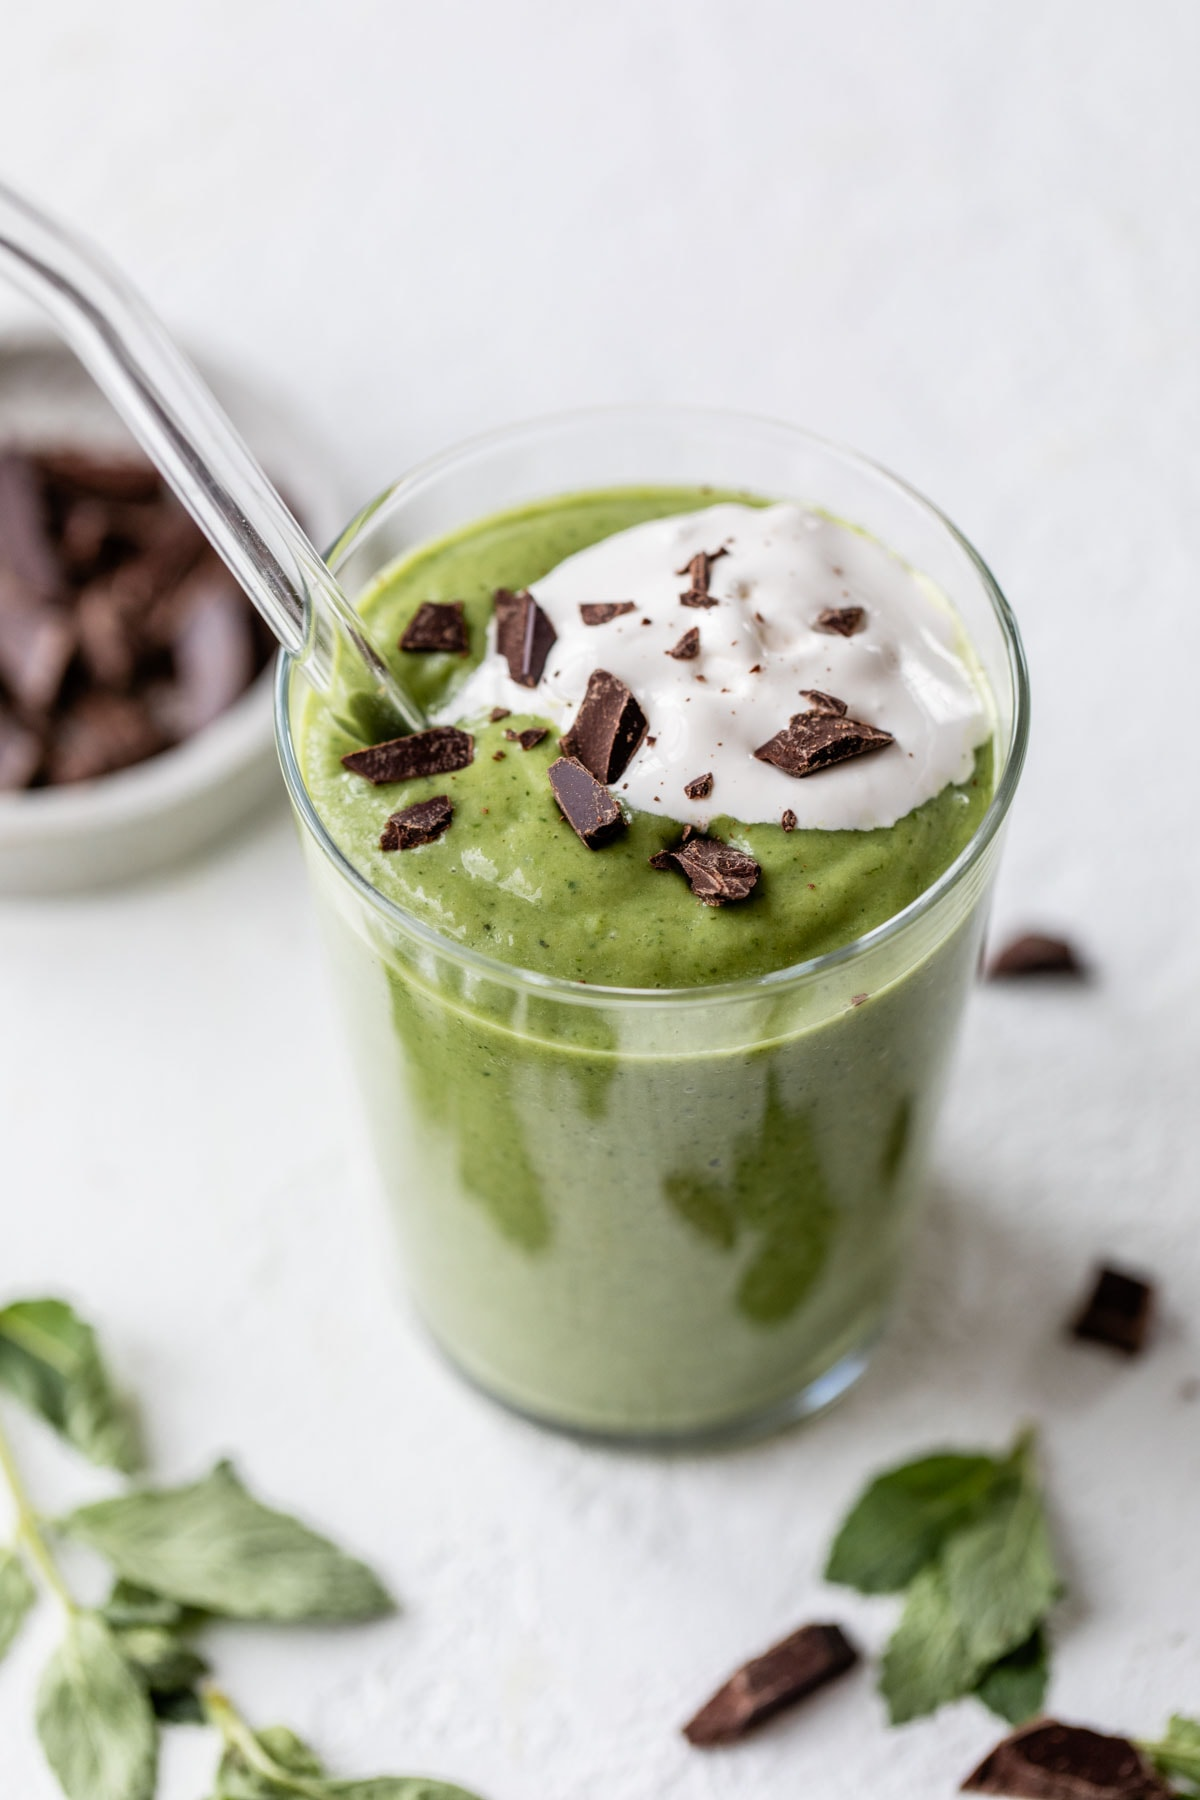 A healthy mint smoothie made with avocado and spinach that tastes just like the McDonald's Shamrock Shake